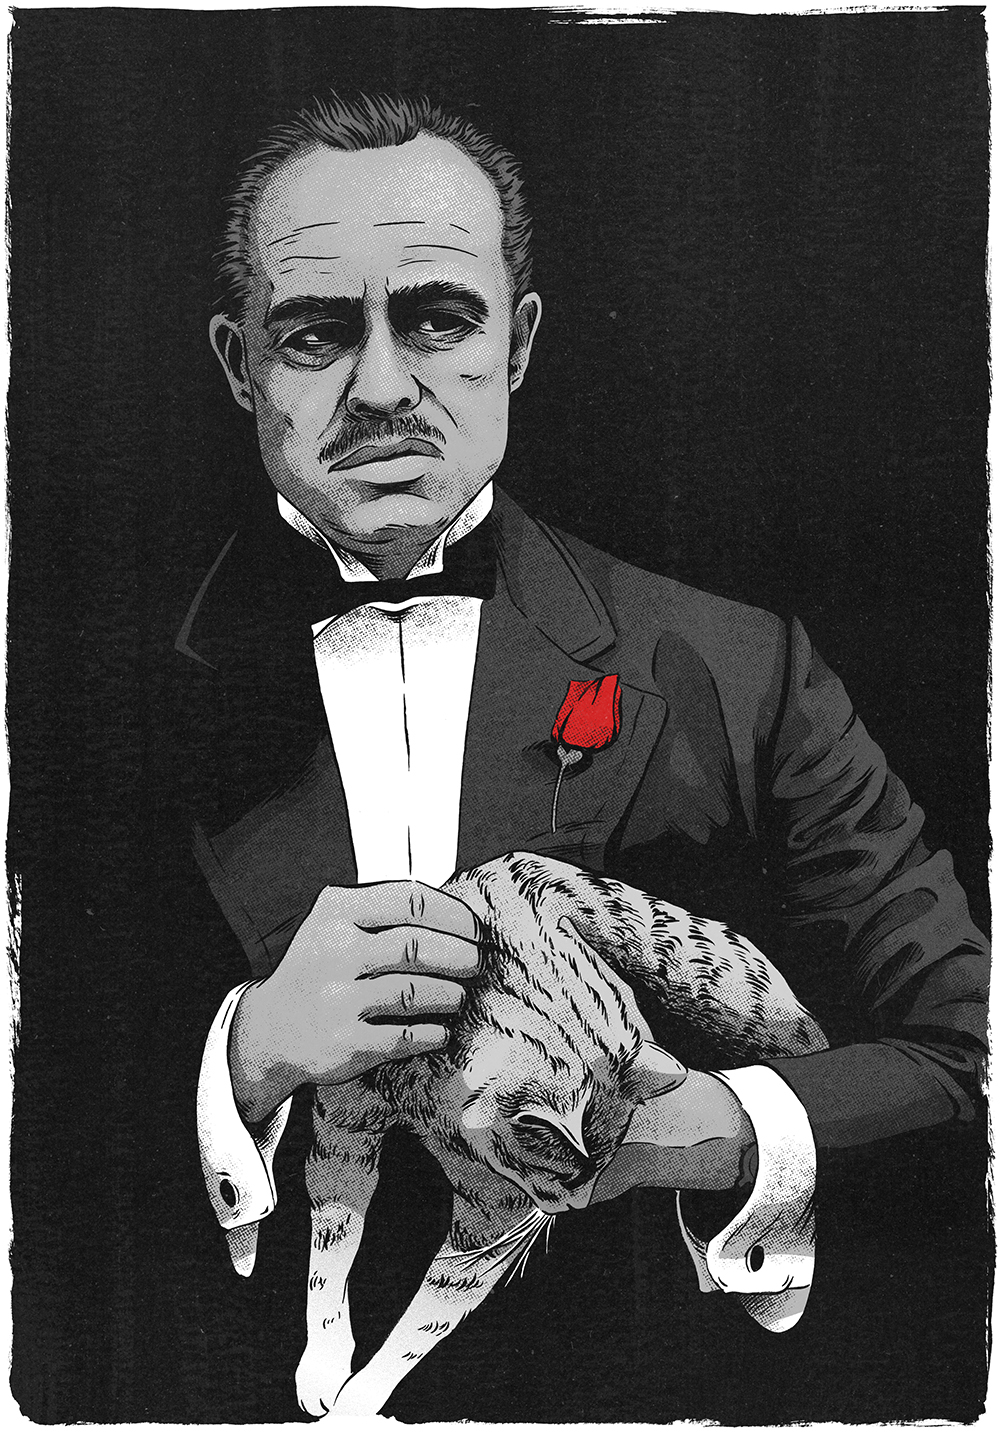 Francis Ford Coppola's The Godfather